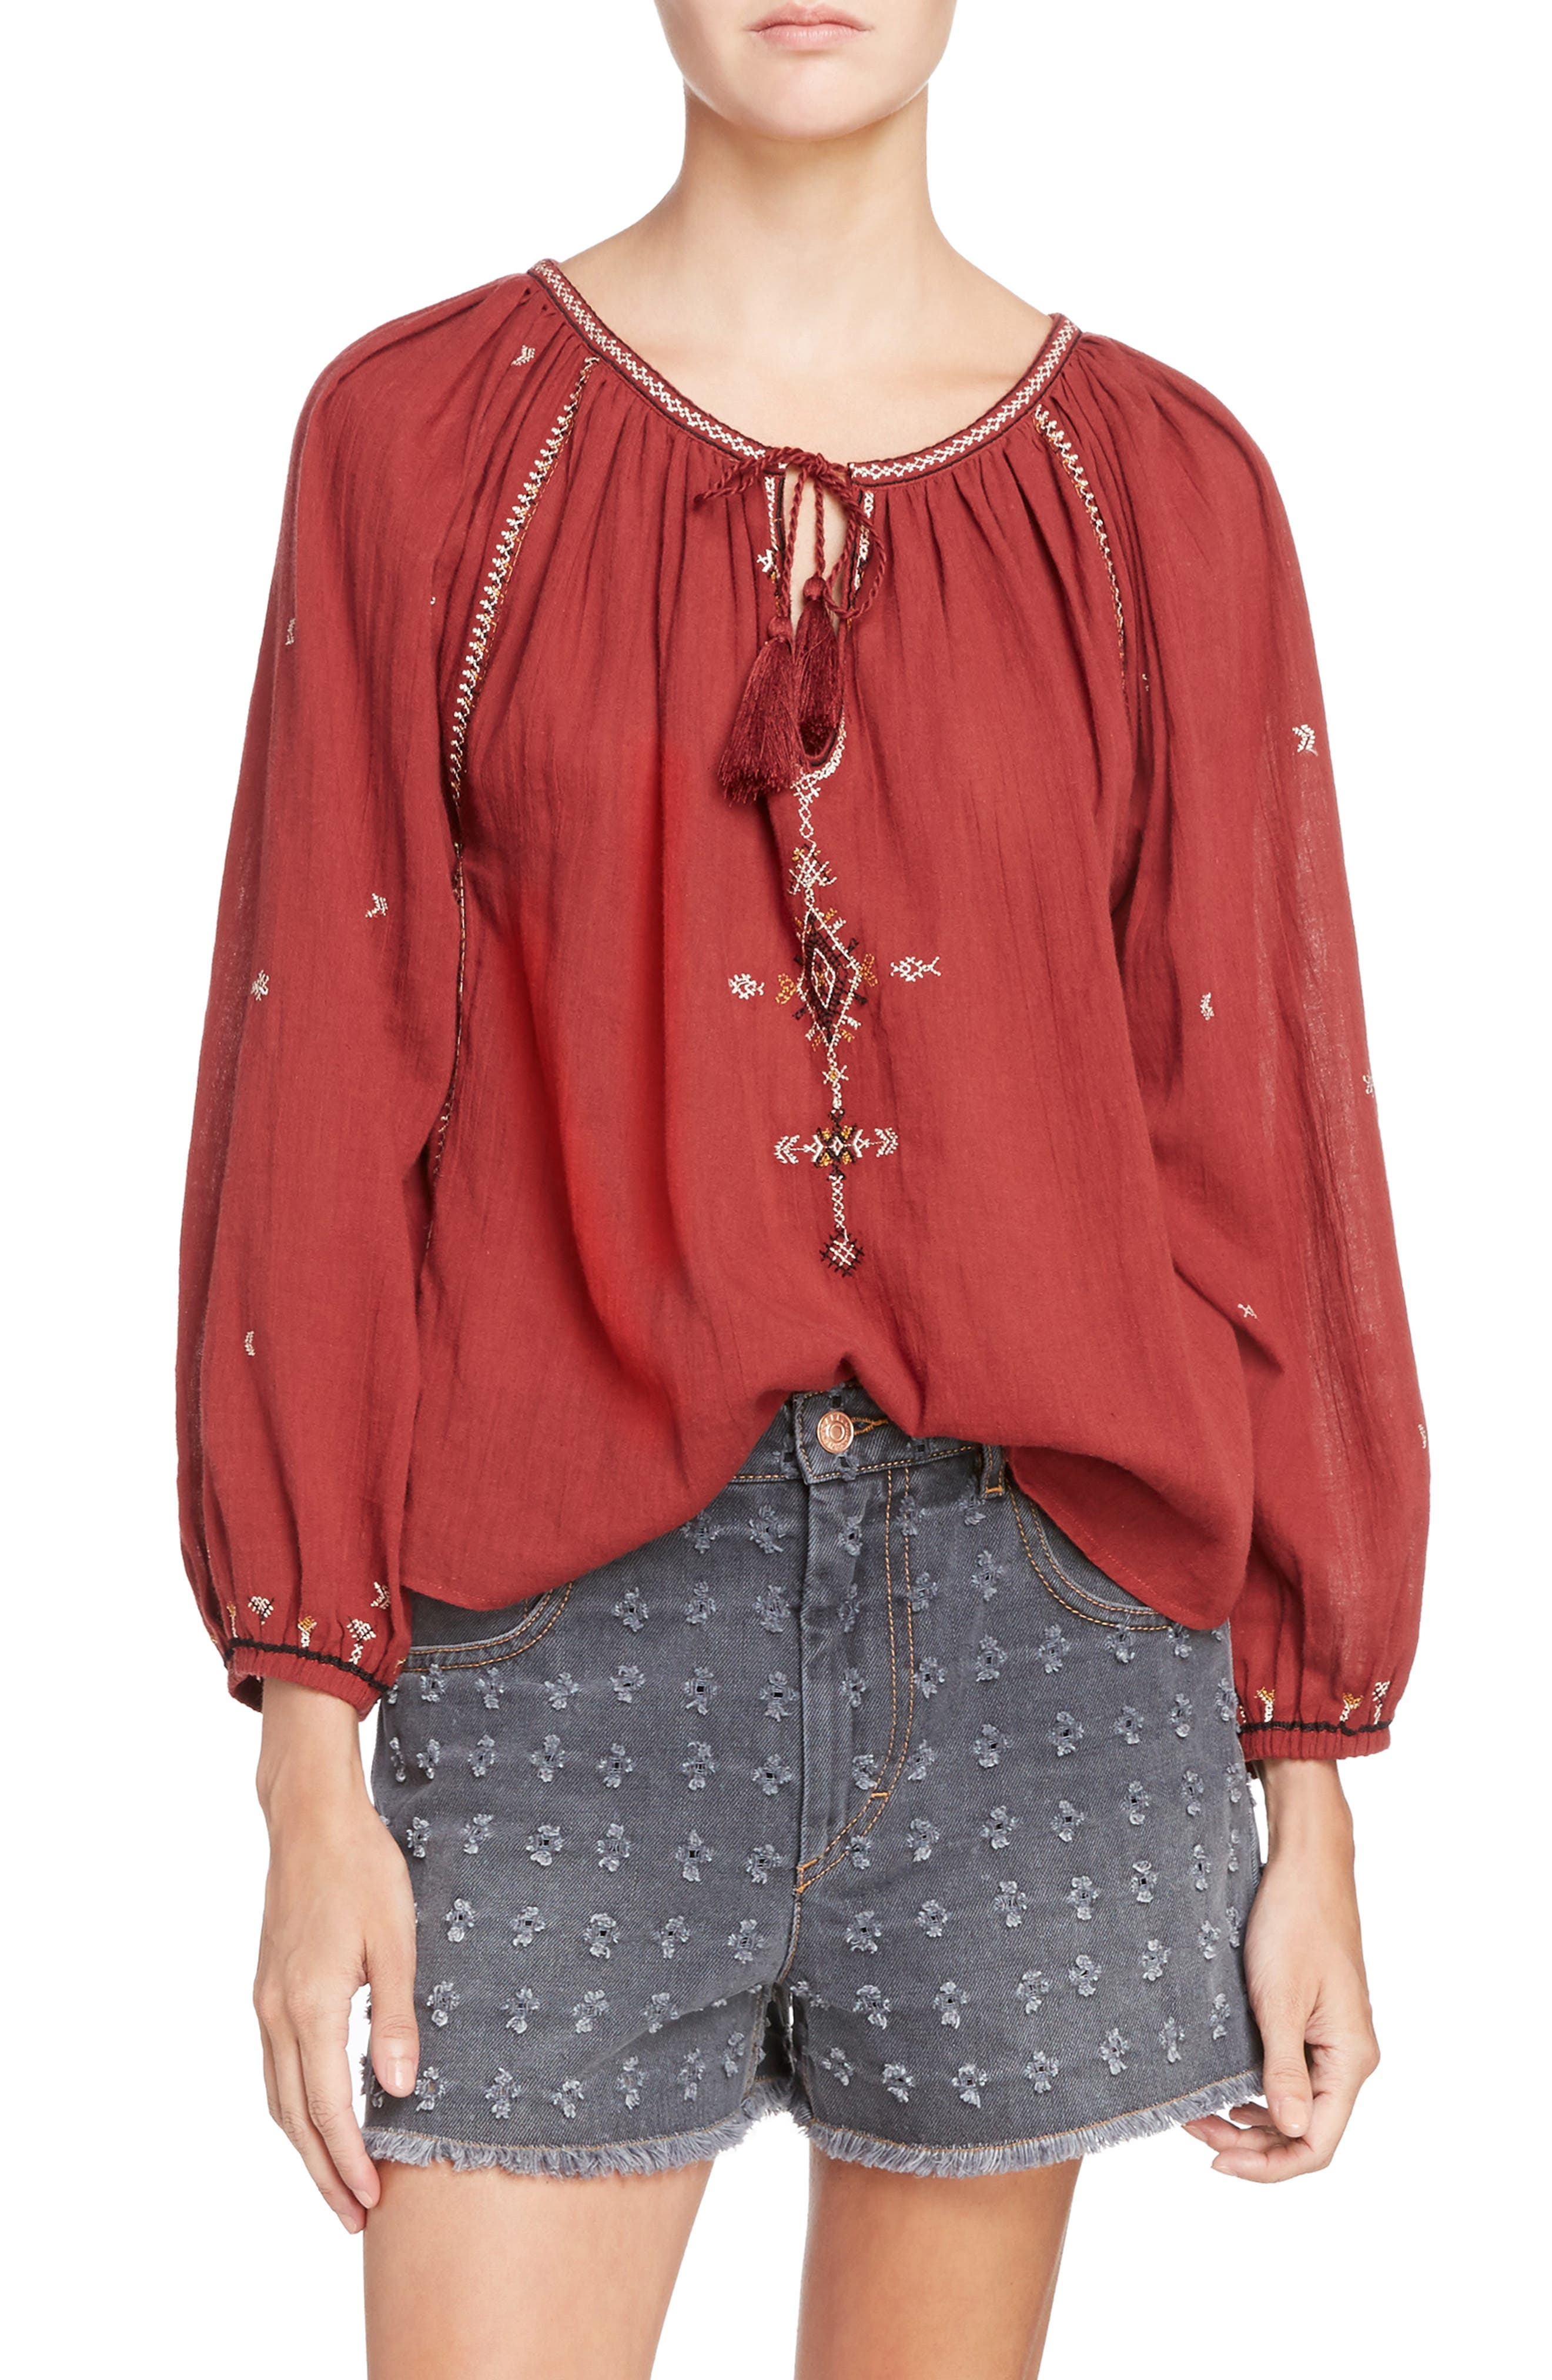 Isabel Marant Étoile Melina Embroidered Cotton Top